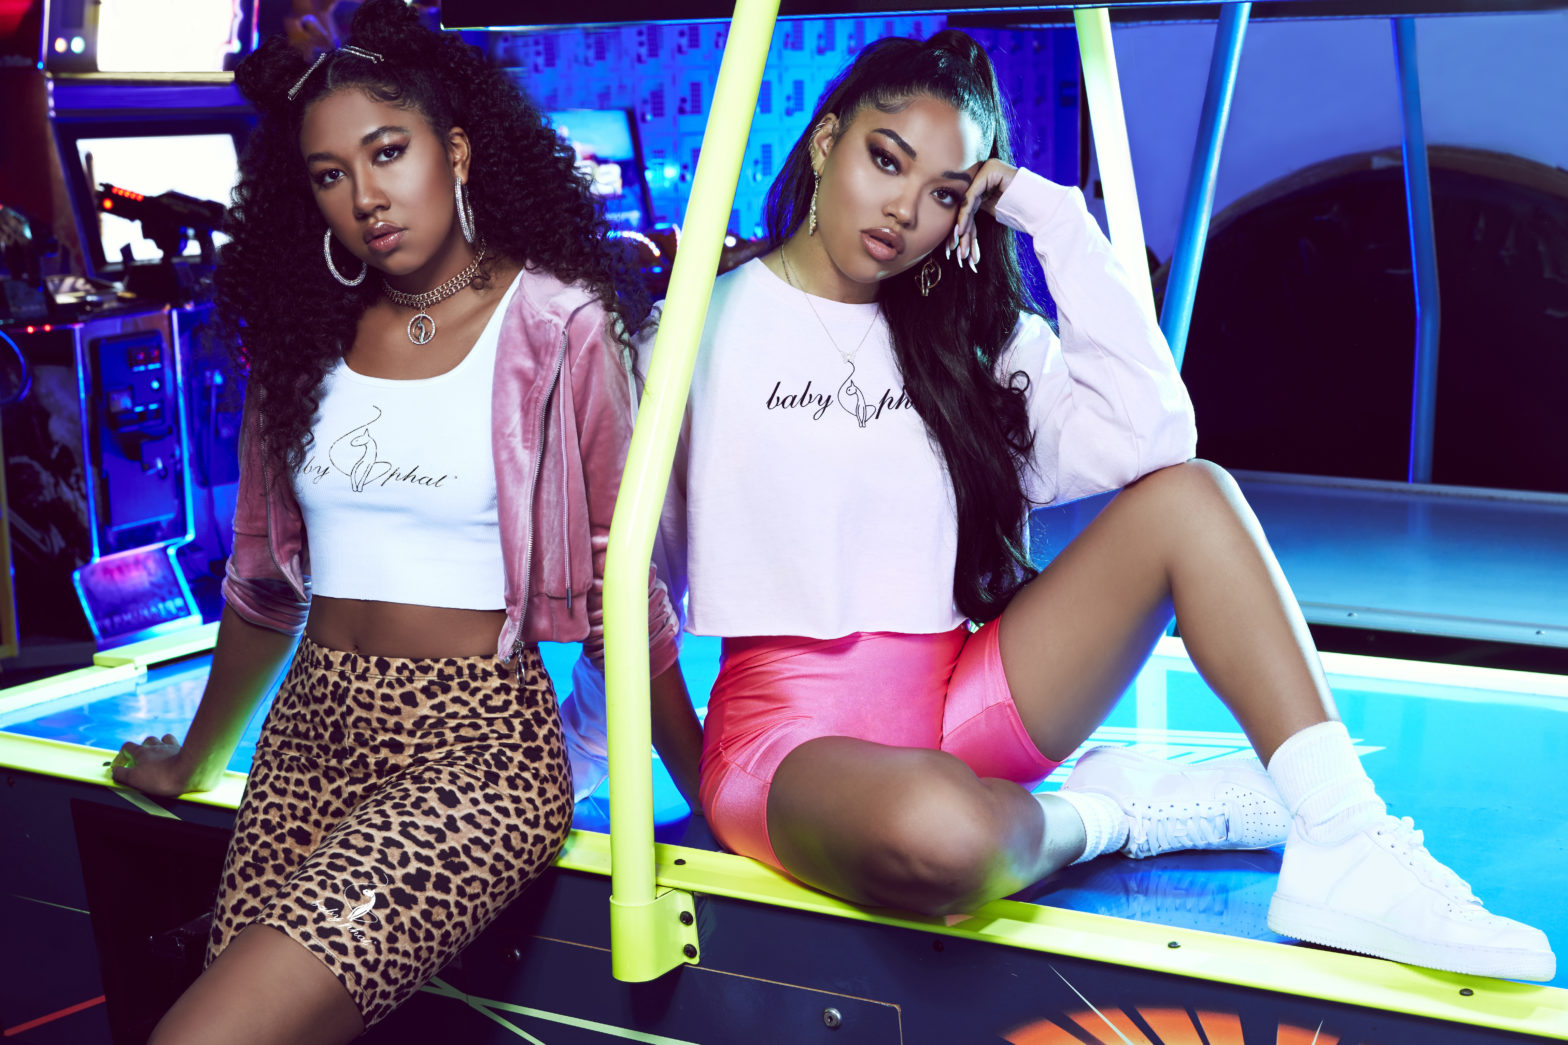 baby-phat-relaunch-@-forever-21-with-collab